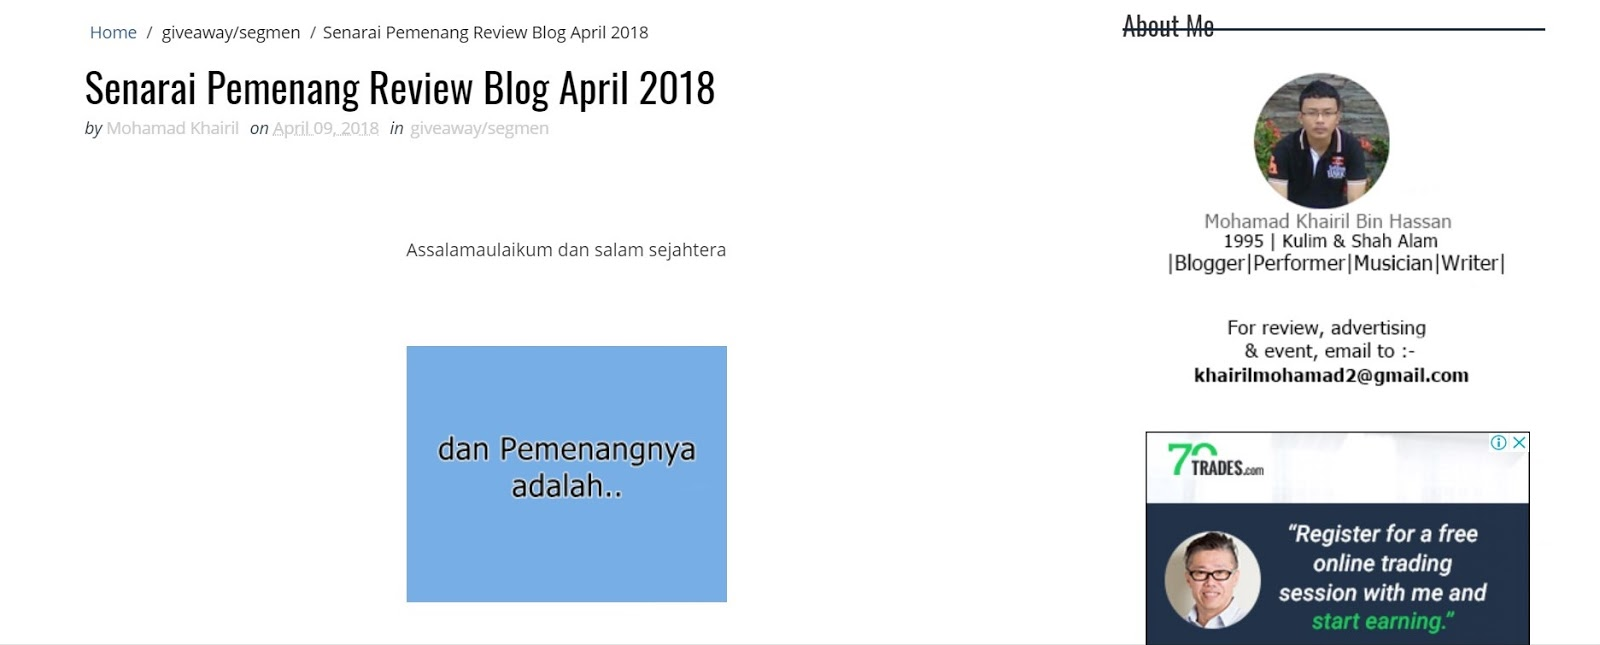 menang blog reviewer